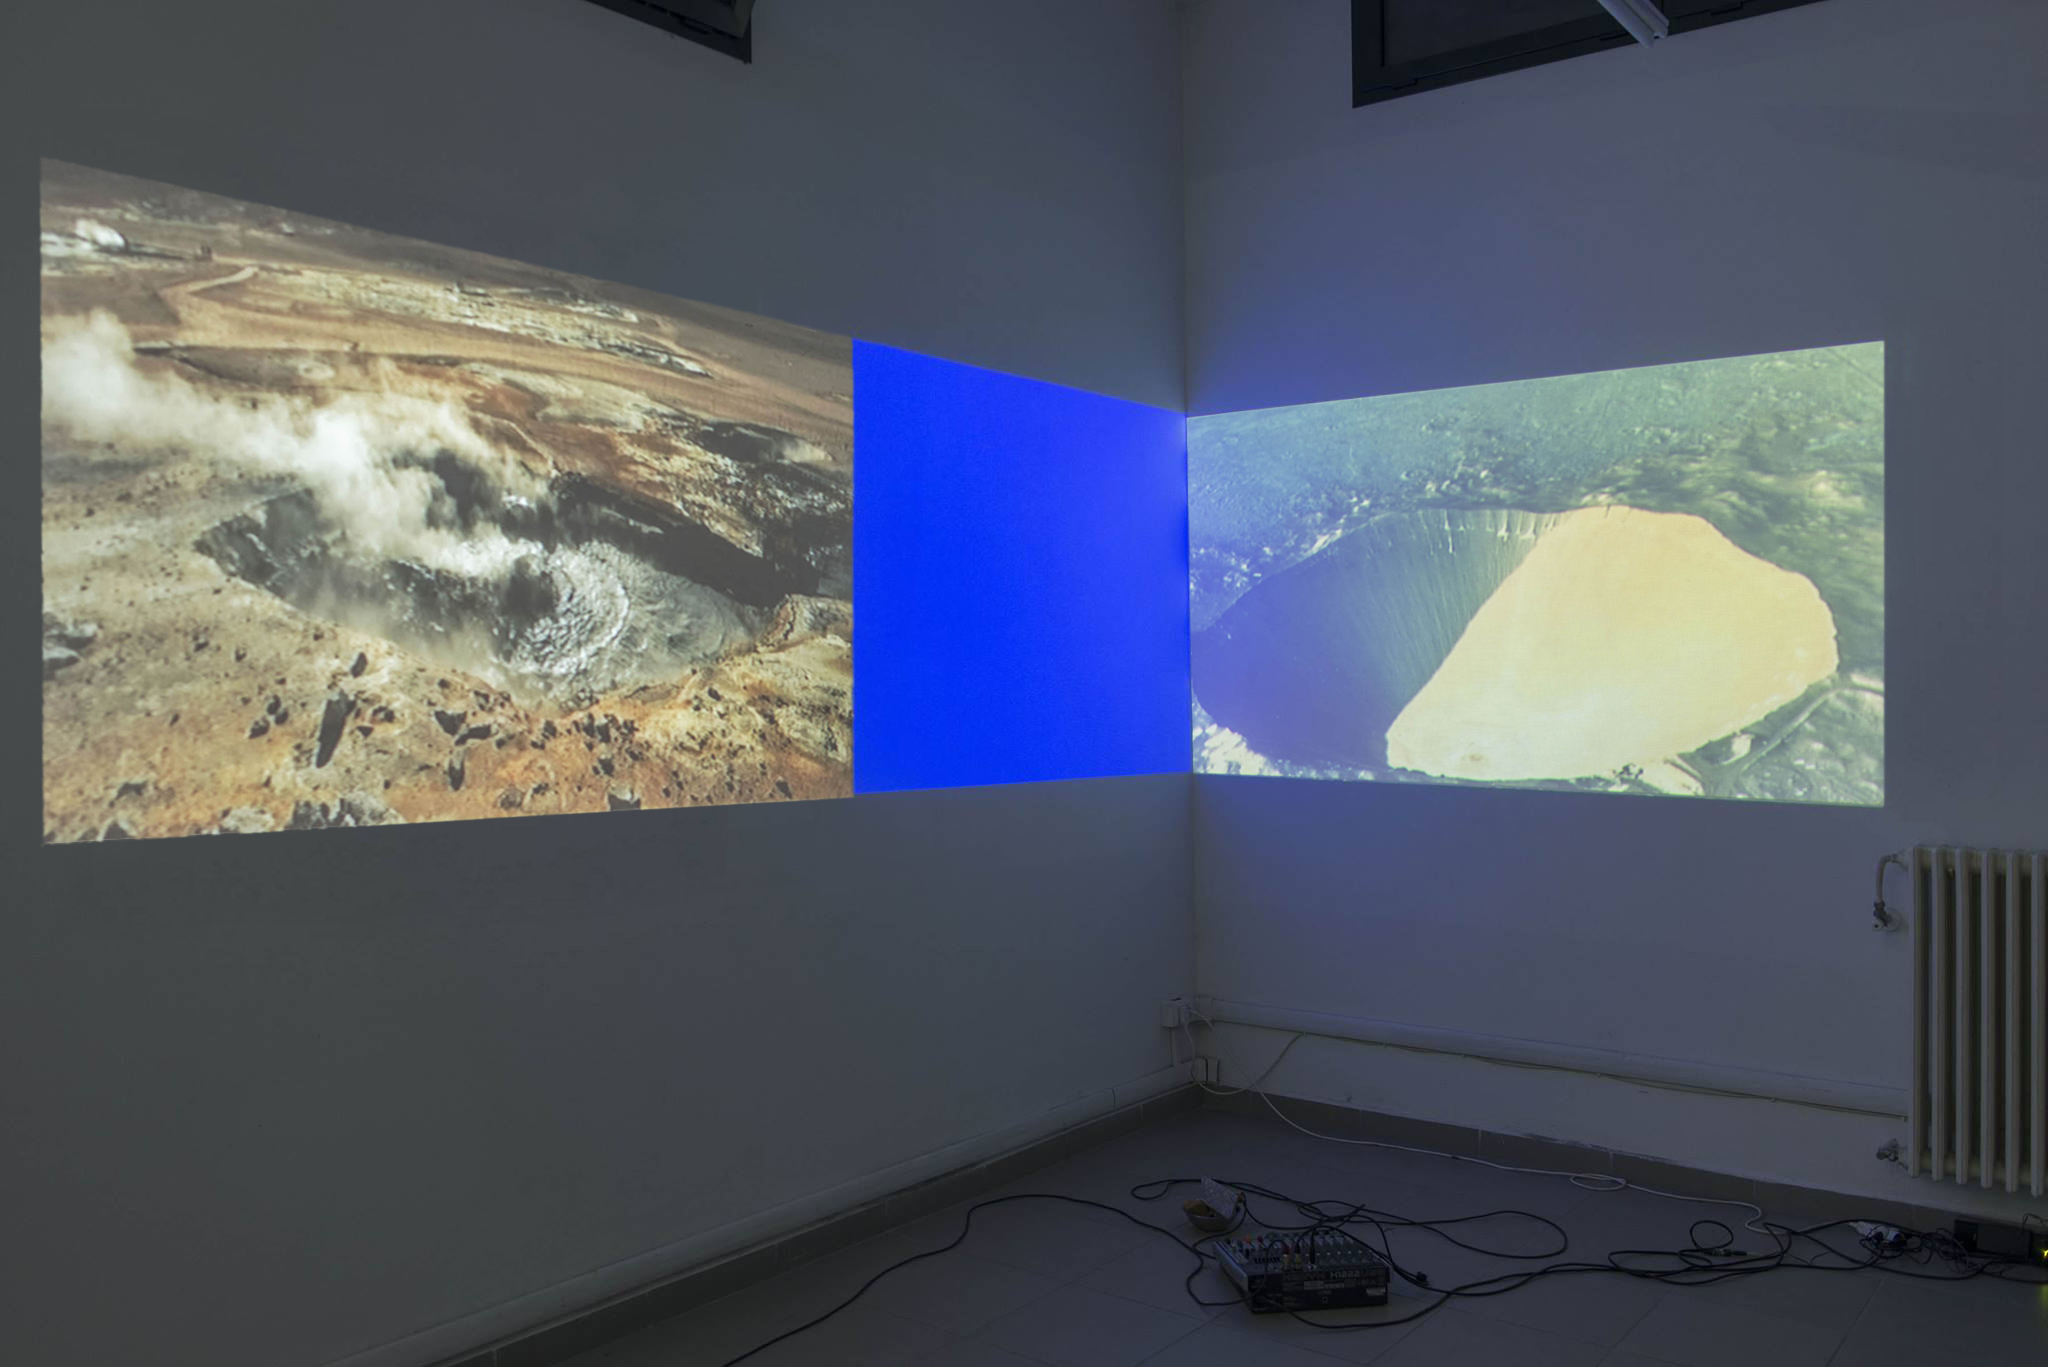 Anna Mikkola and Matilda Tjäder, Human Interference Task Force. Episode 1: Community of Cells, 2014.Photo by Giorgio Benni. Image courtesy the artist, curators and The Gallery Apart, Rome.